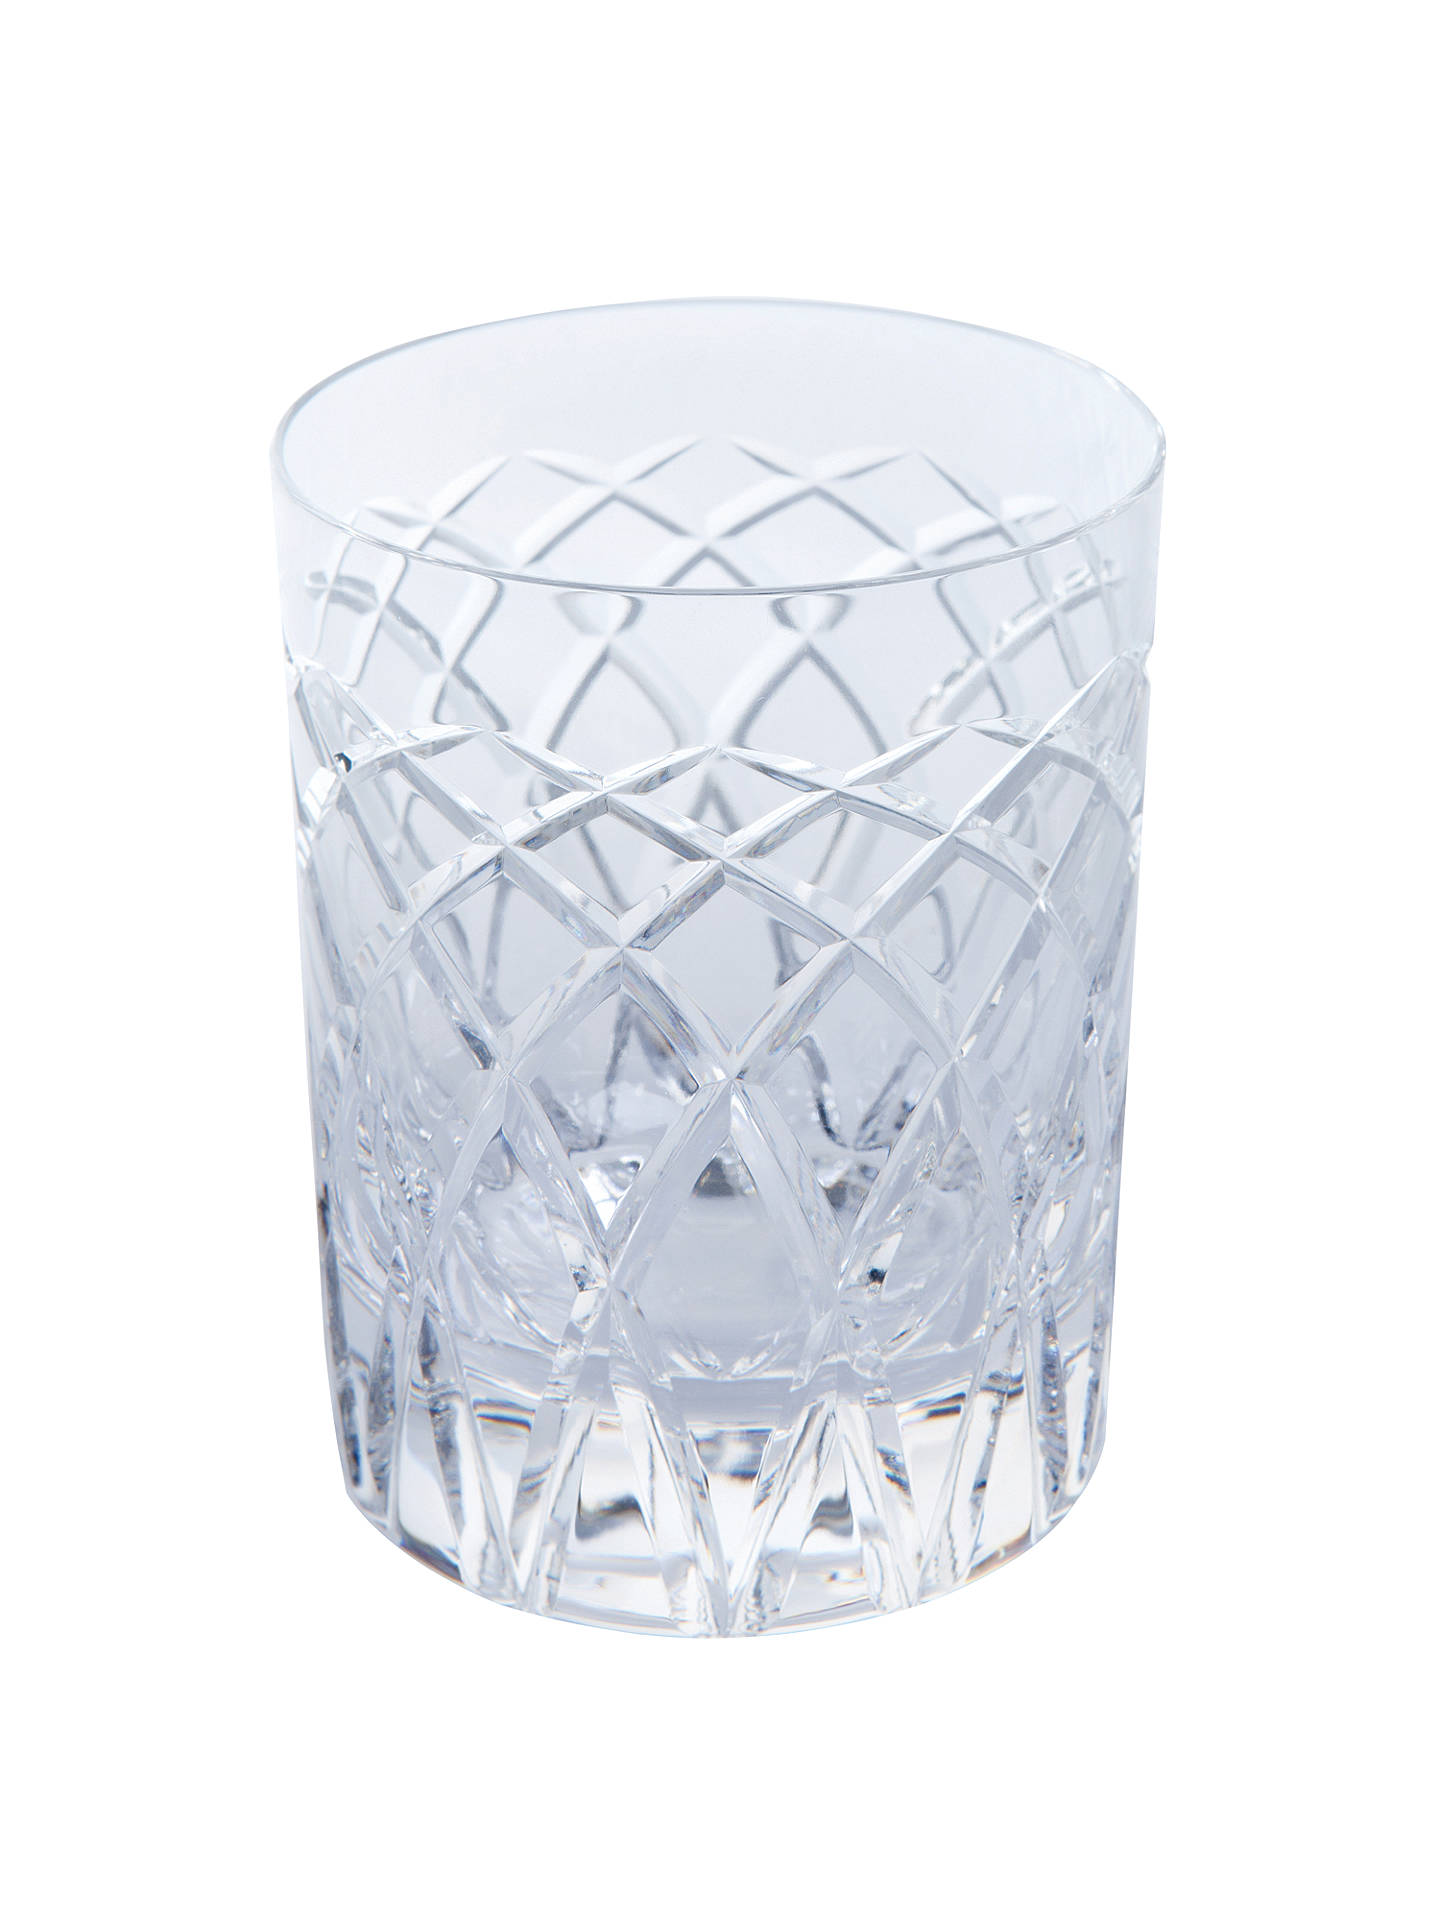 BuyRoyal Brierley Harris Tumbler, Set of 2, Clear, 230ml Online at johnlewis.com